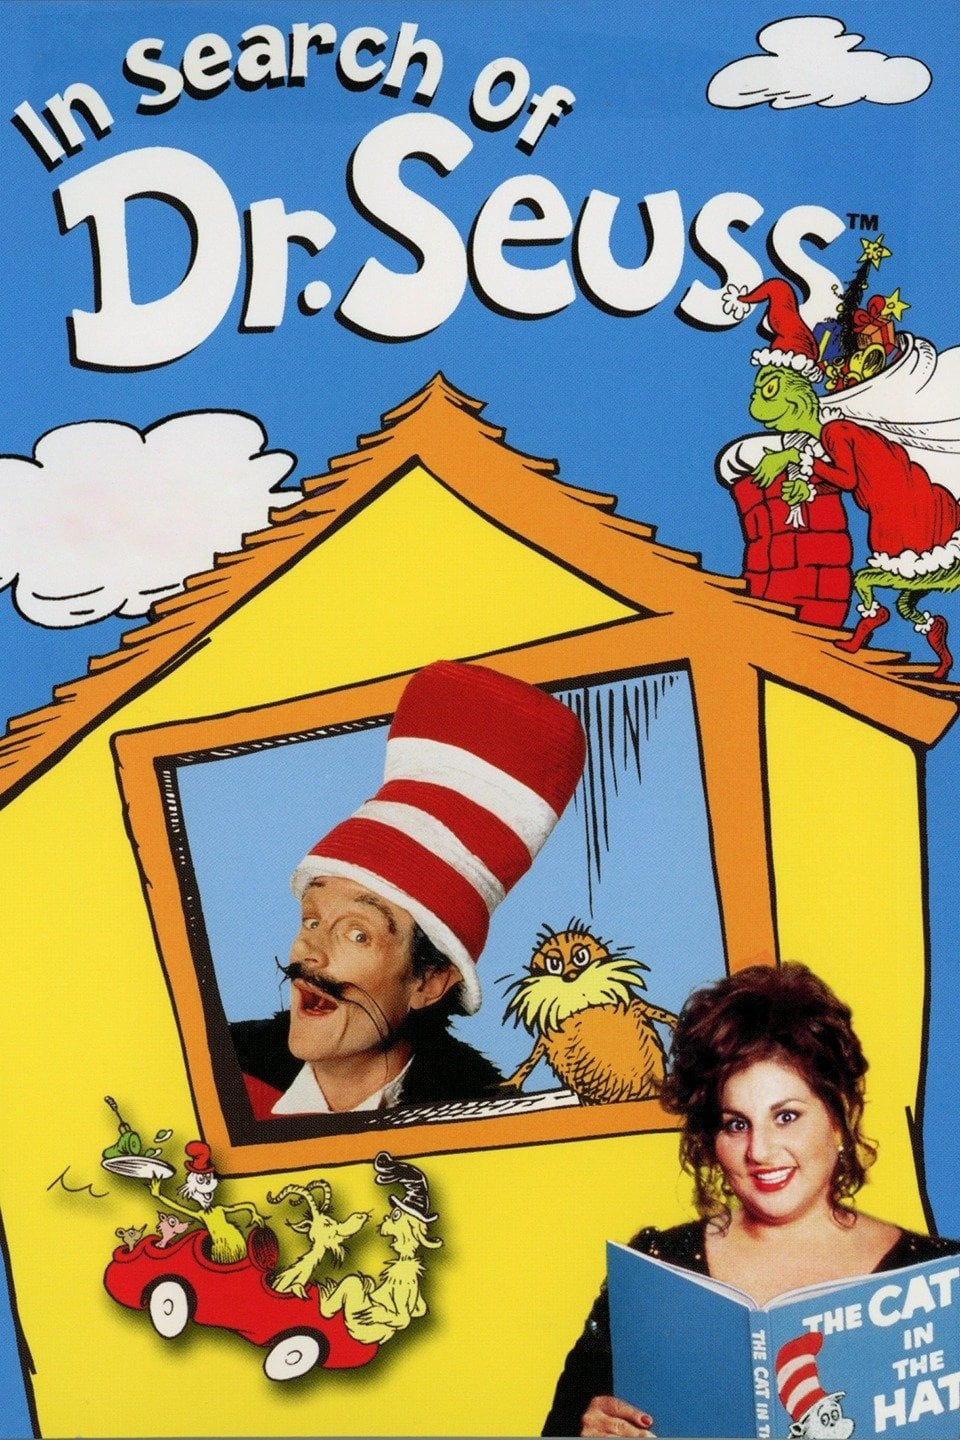 In Search of Dr. Seuss (1970)